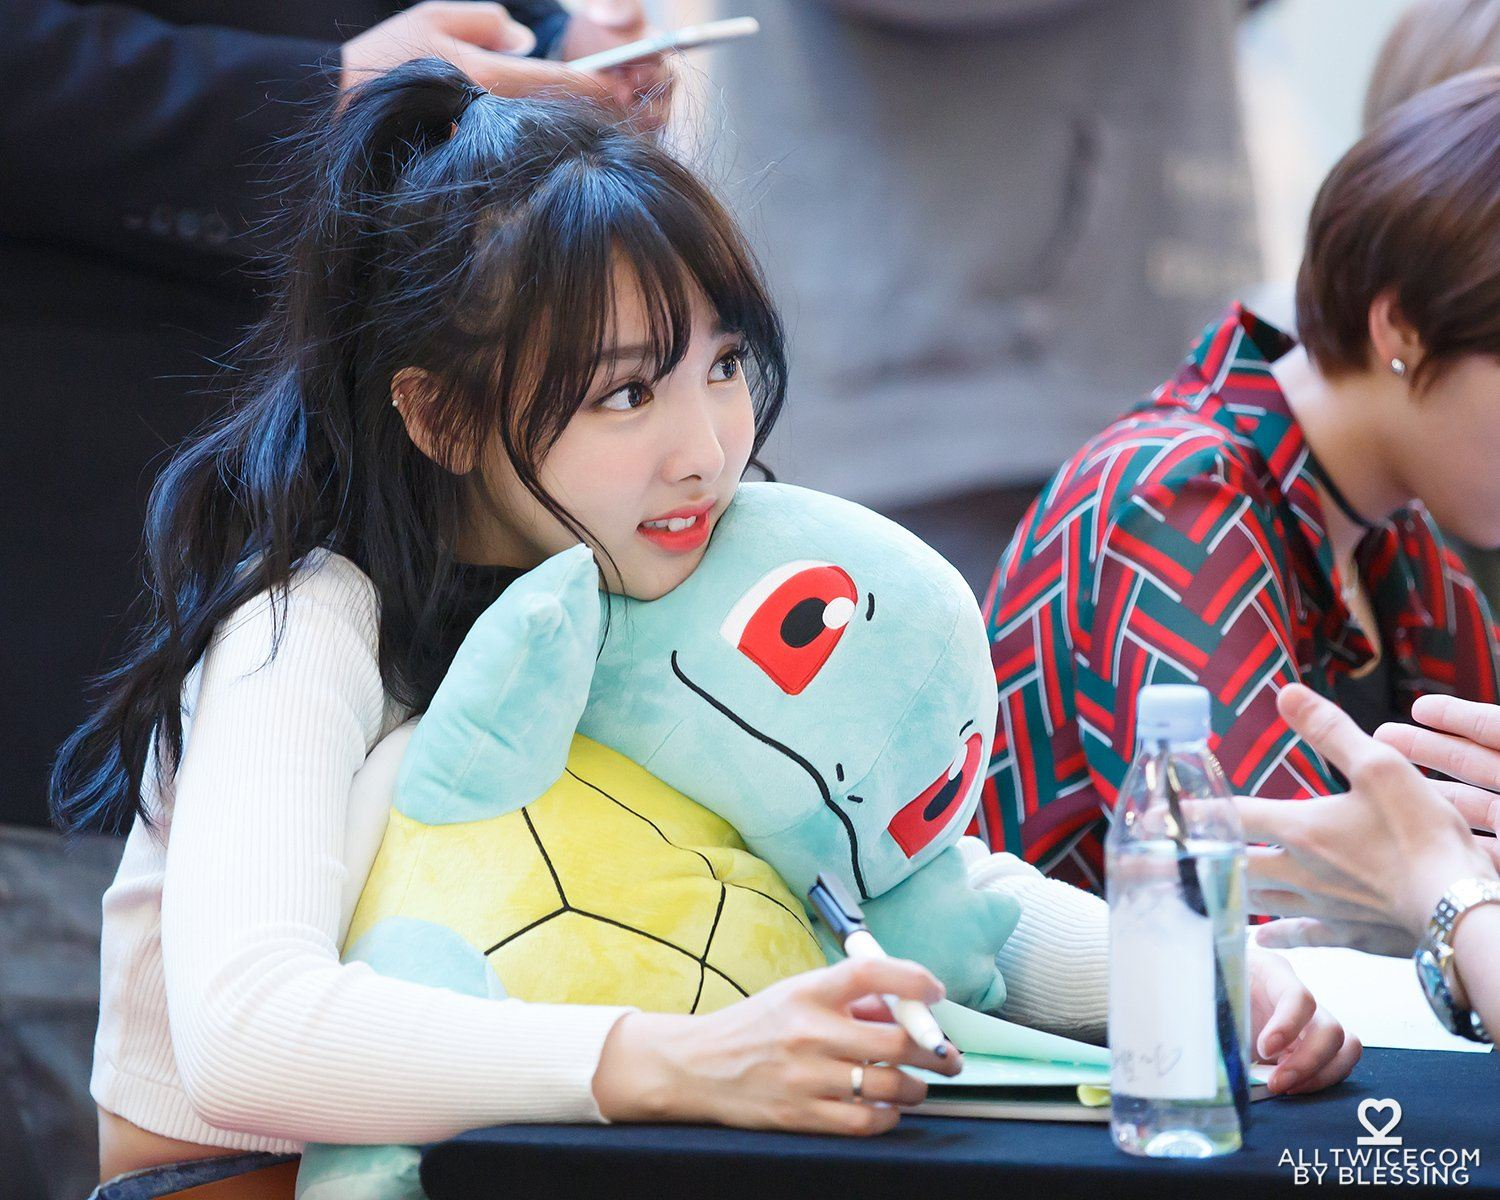 Nayeon with a pokemon toy.